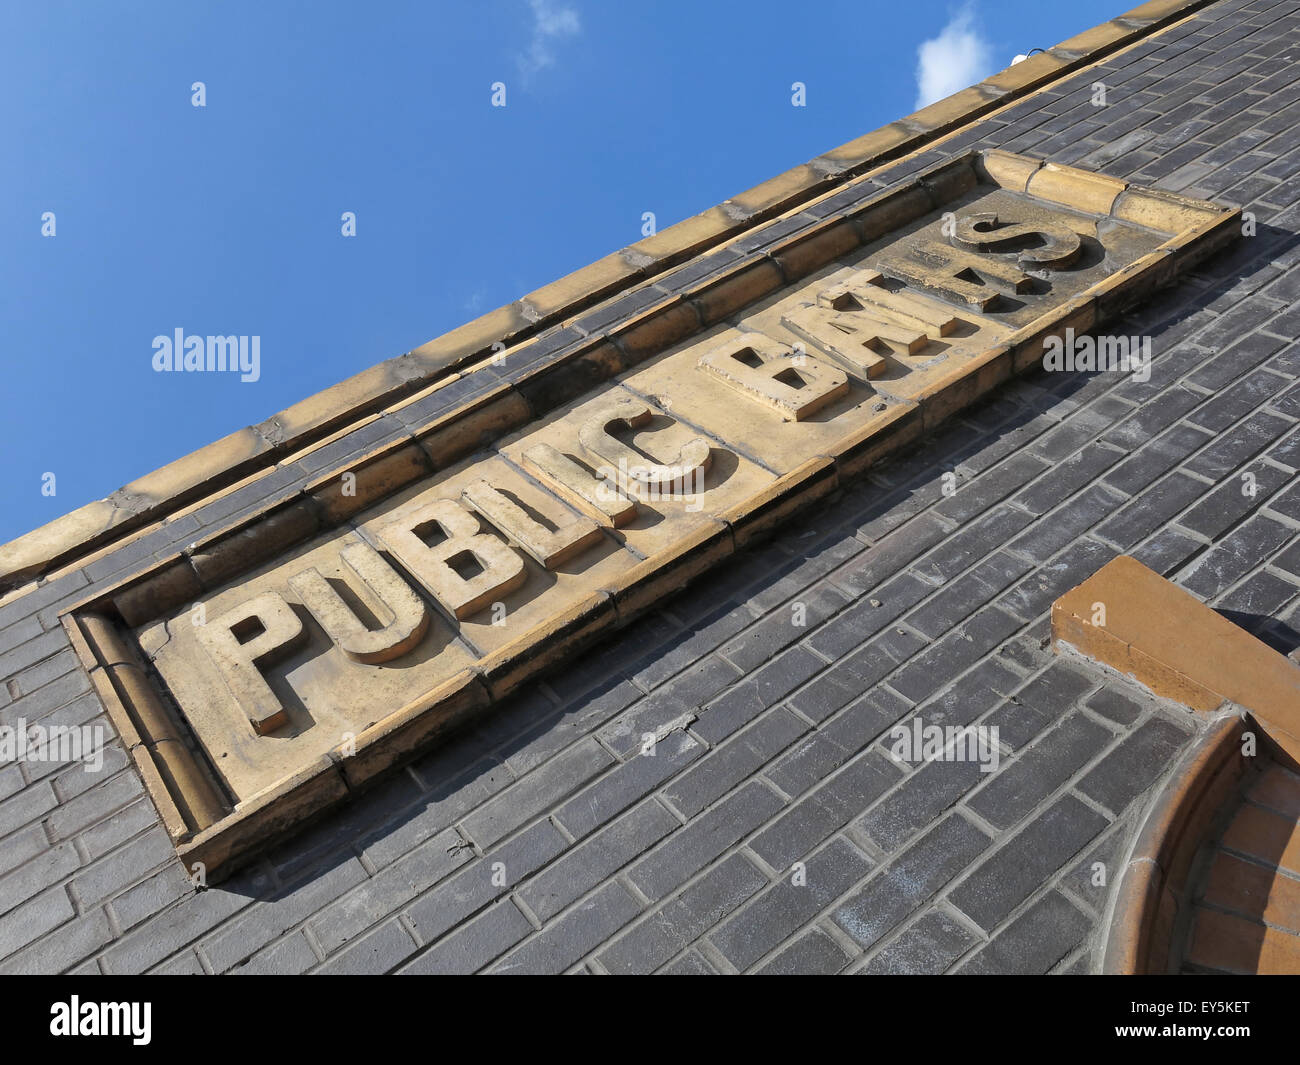 Warrington Public Baths Sign,Cheshire,England,UK - Stock Image